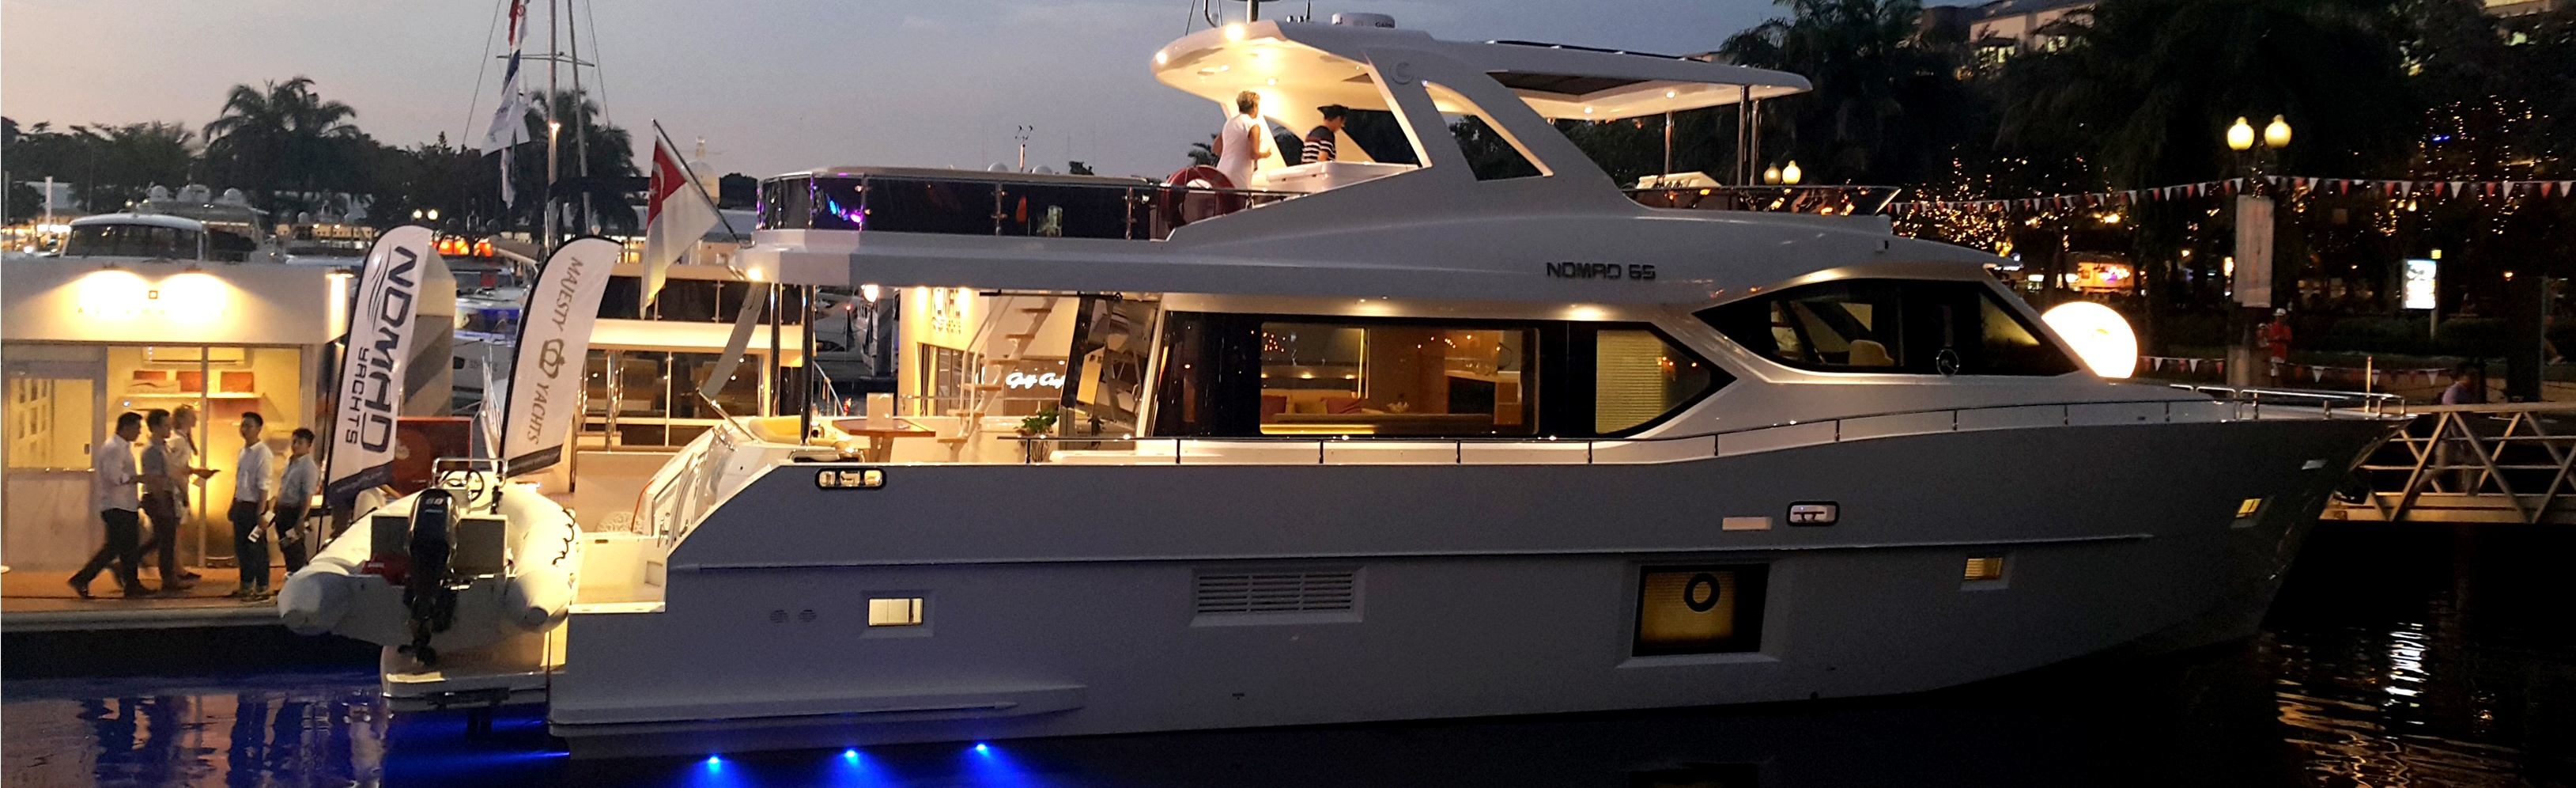 Gulf-Craft,-Singapore-Yacht-Show-Day-2.jpg